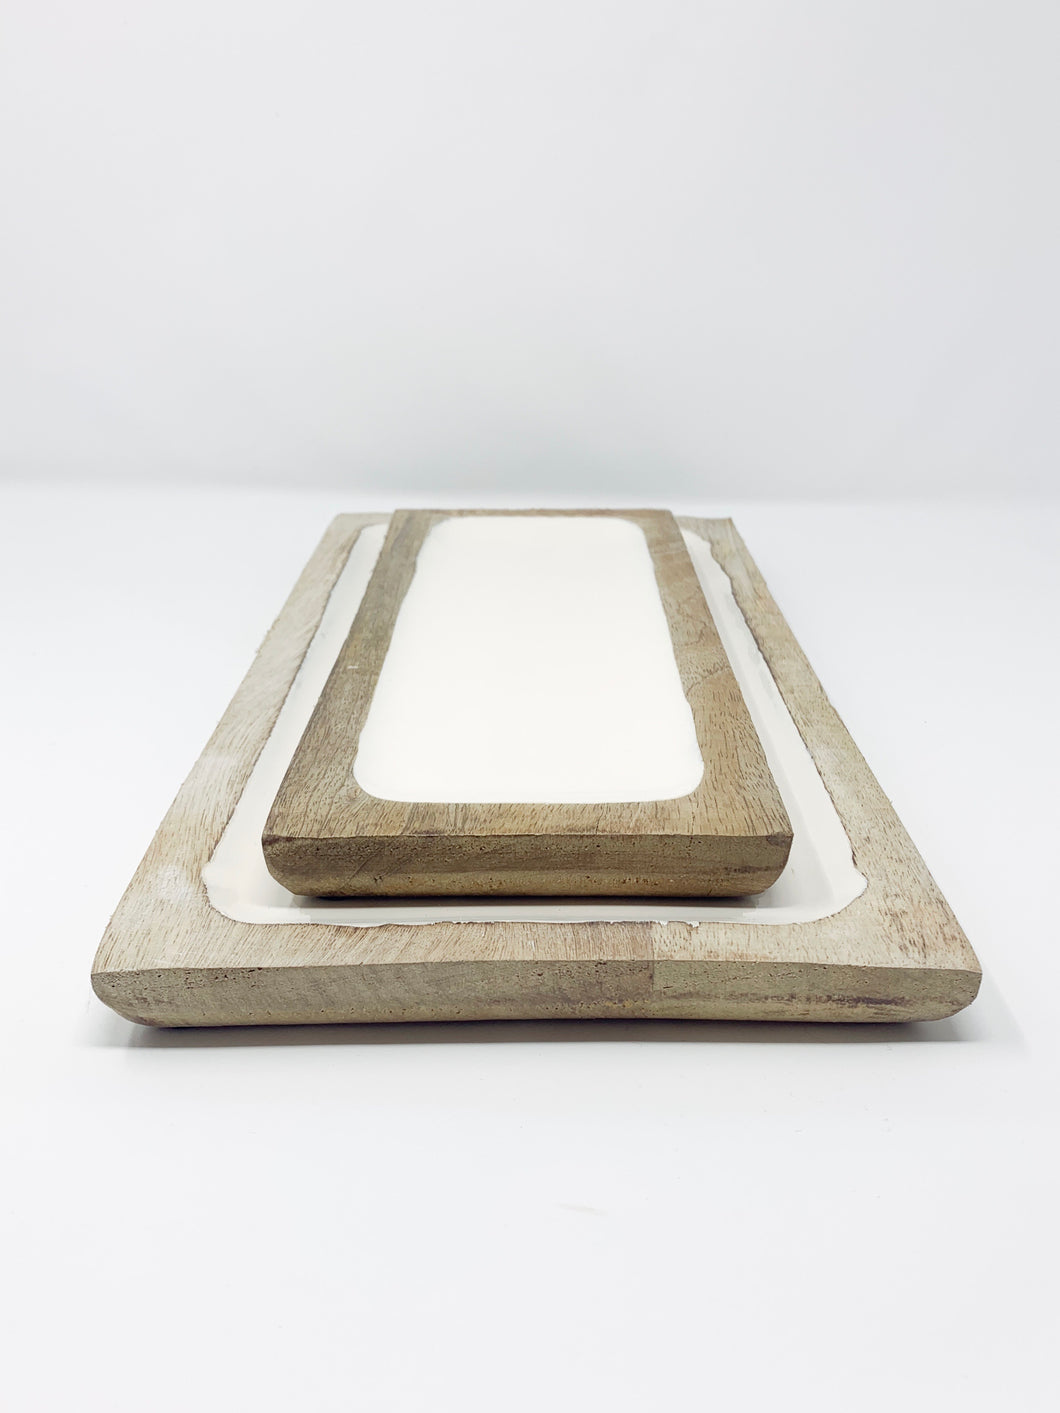 Mango Wood White Tray (2 sizes)